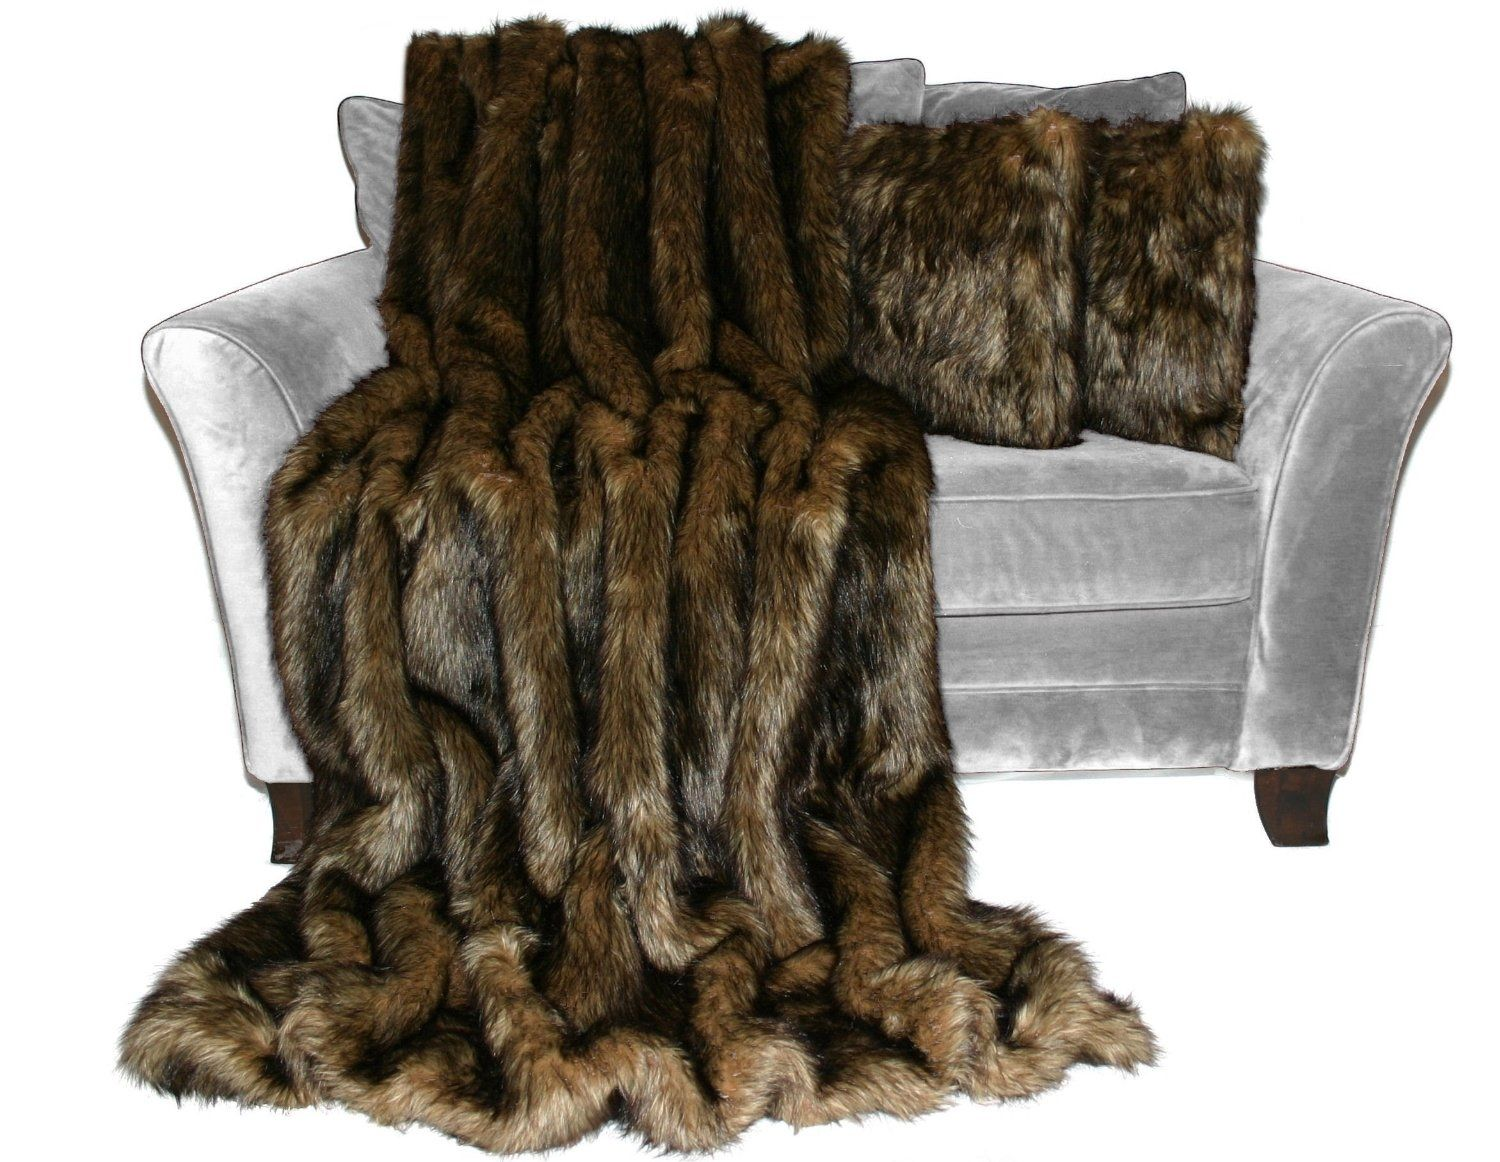 Faux Fur Throw And Pillow Set : Hand Made Premium 60x84 Wolf Brown Black Faux Fur Throw Blanket And 18x18 Decorative Pillow Set ...